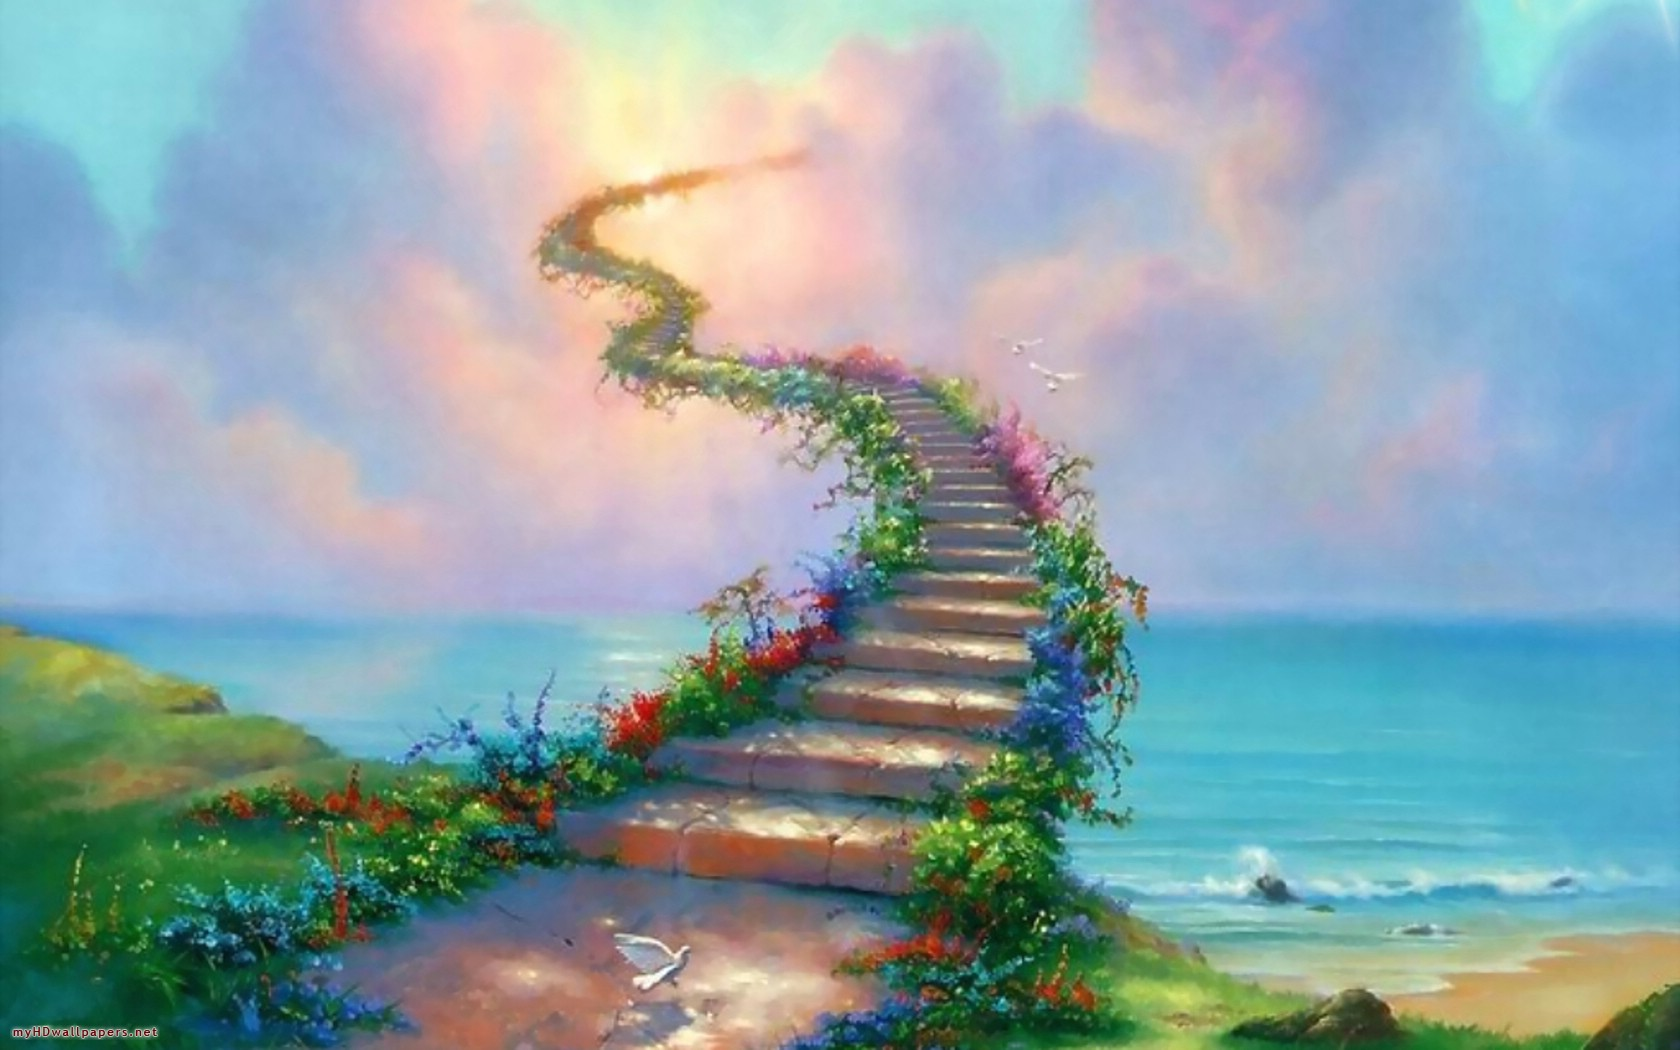 Animated Wallpaper For Tablet Stairway To Heaven Wallpapers Stairway To Heaven Stock